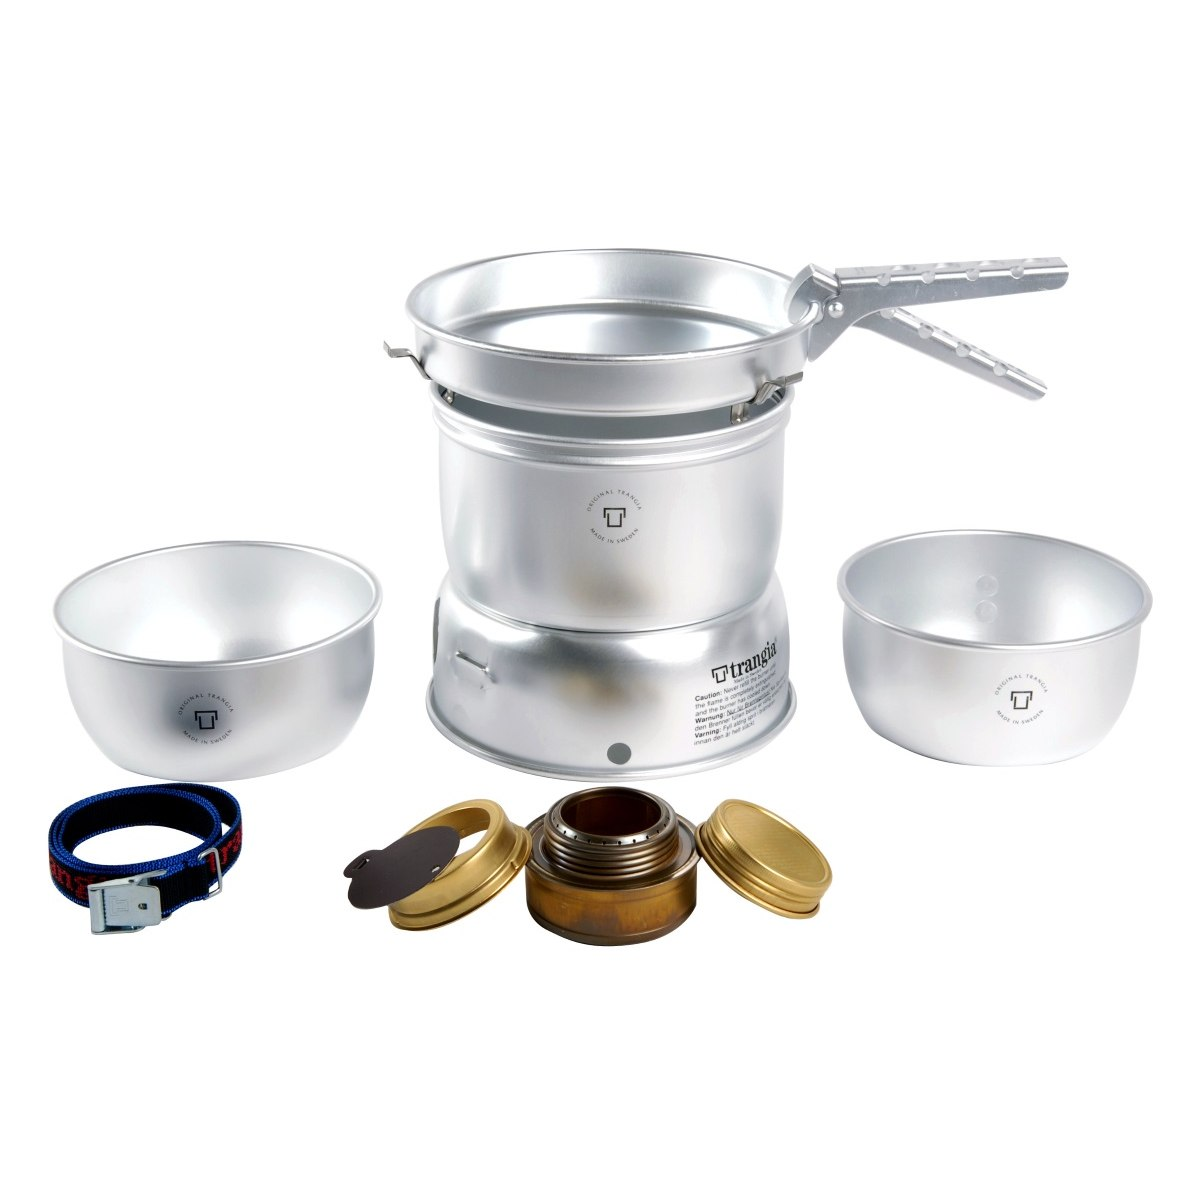 Trangia Storm Cooker 27-1 UL - Stove System